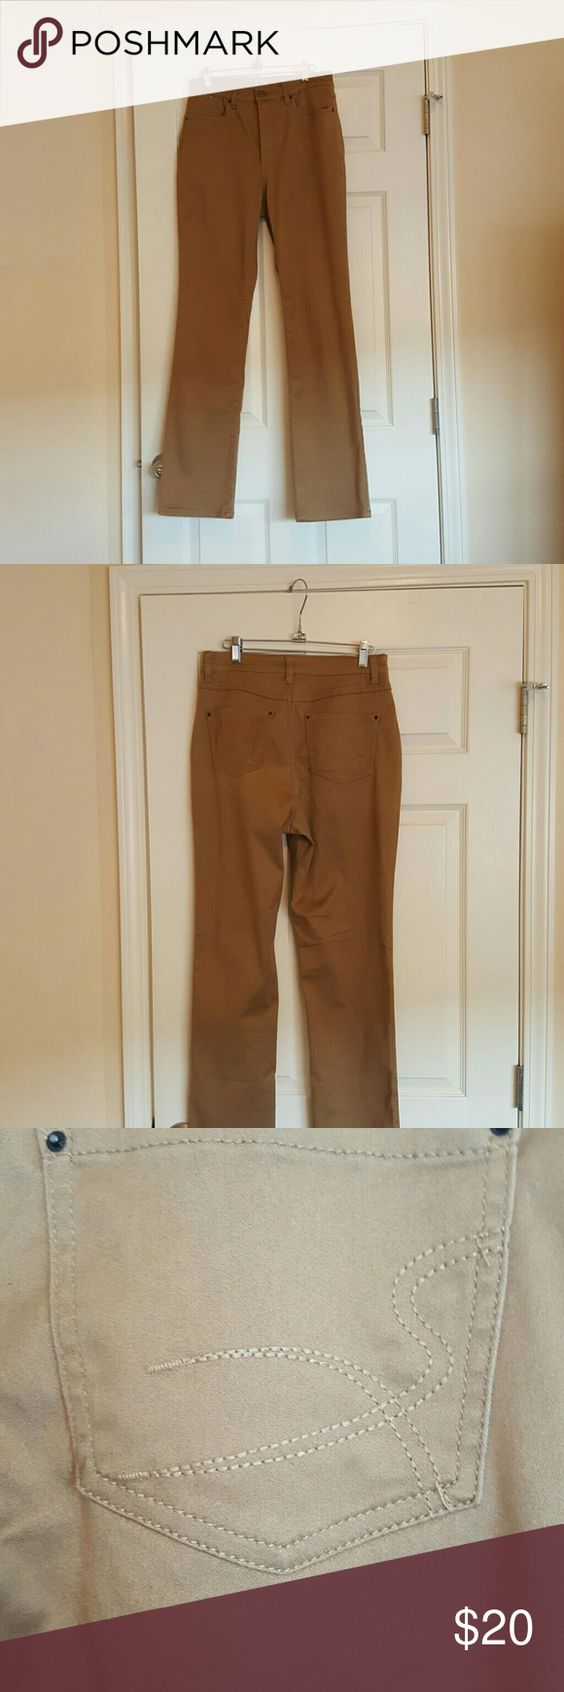 French Dressing Jeans French Dressing Jeans size 8. Only worn once. 32 inch inseam. Bootcut. French Dressing jeans Jeans Boot Cut